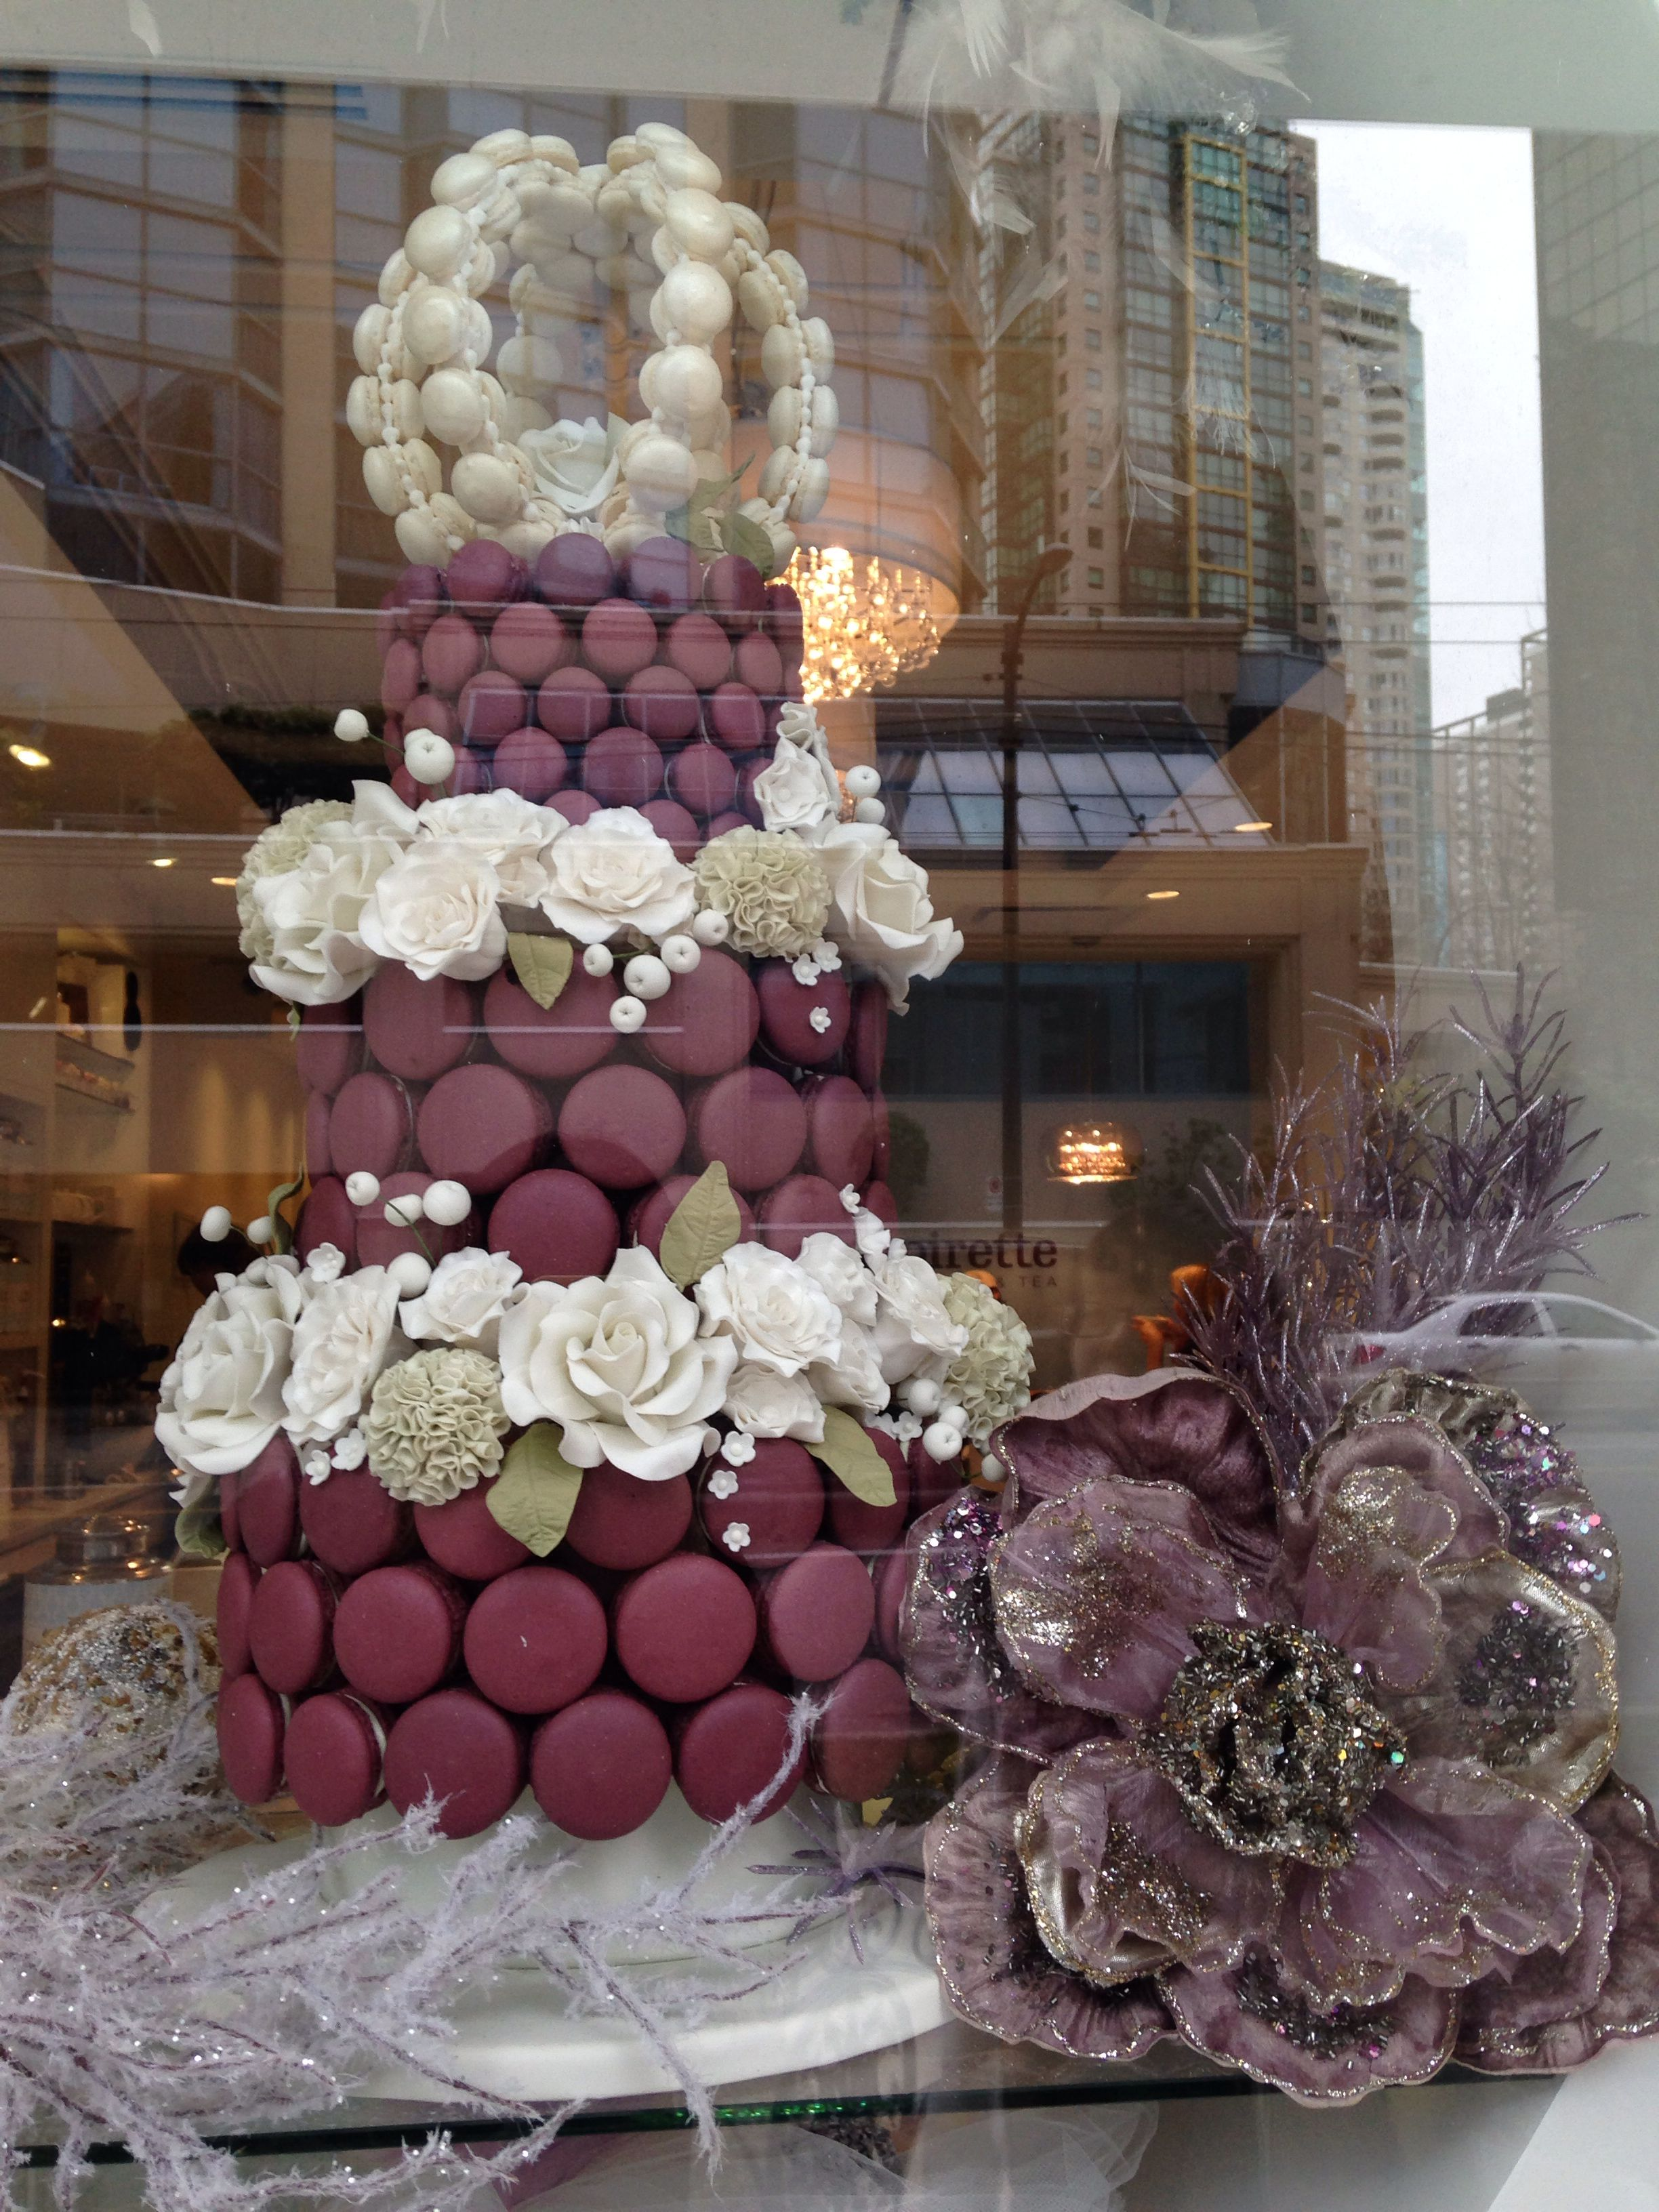 The Soirette #downtown Vancouver #west Pender St. #xmas #macaron tree